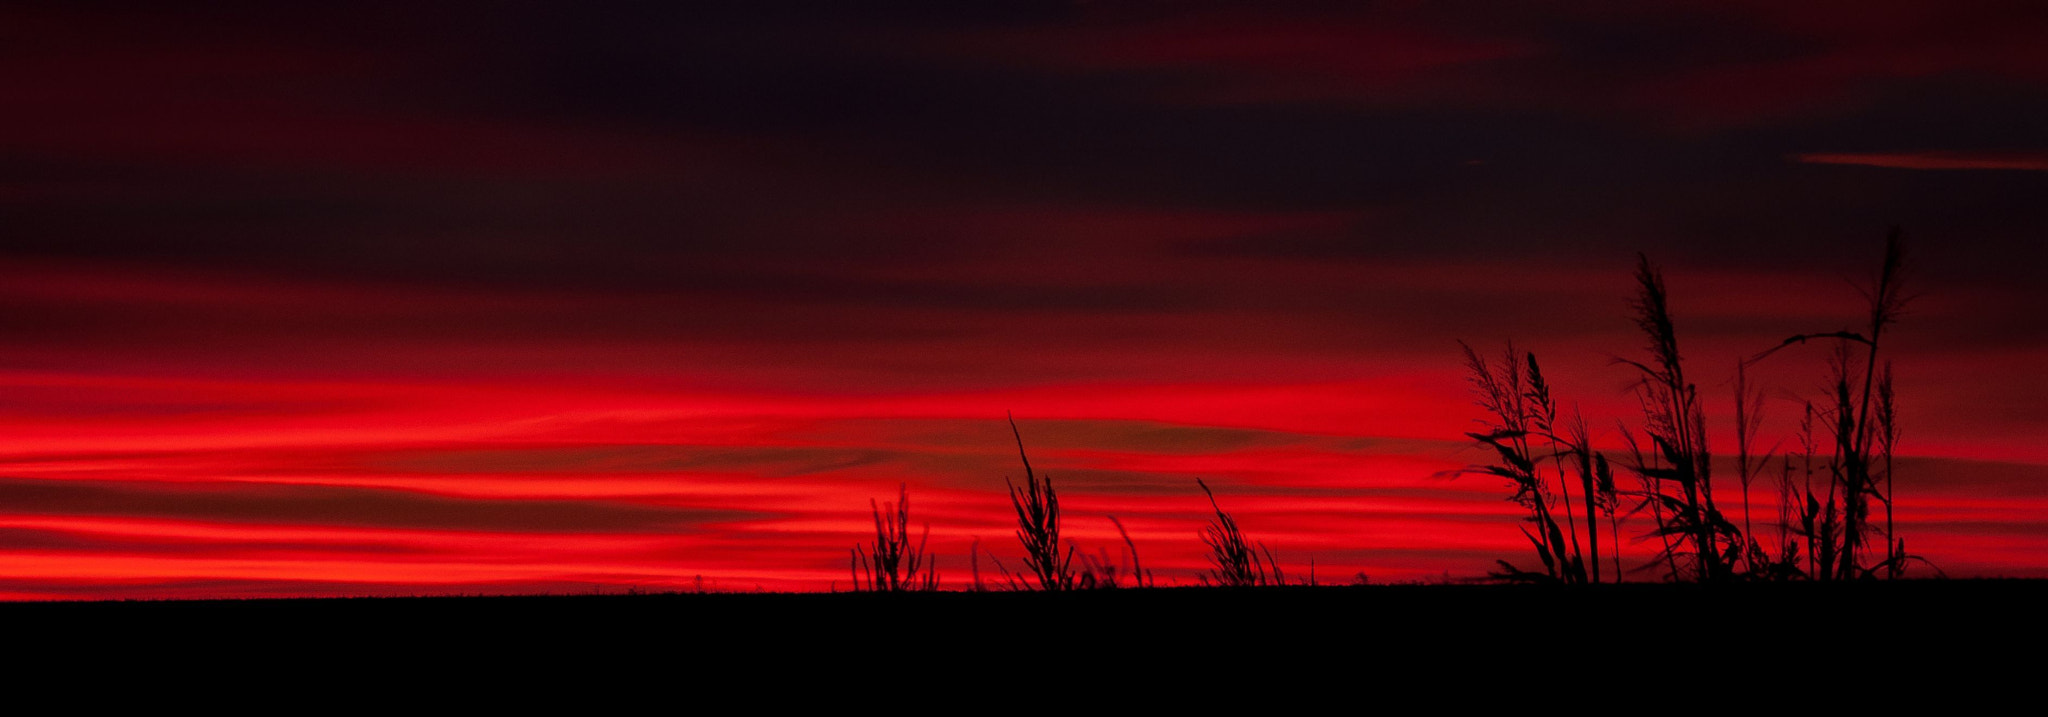 Photograph Red Sunrise by Todd Mobray on 500px